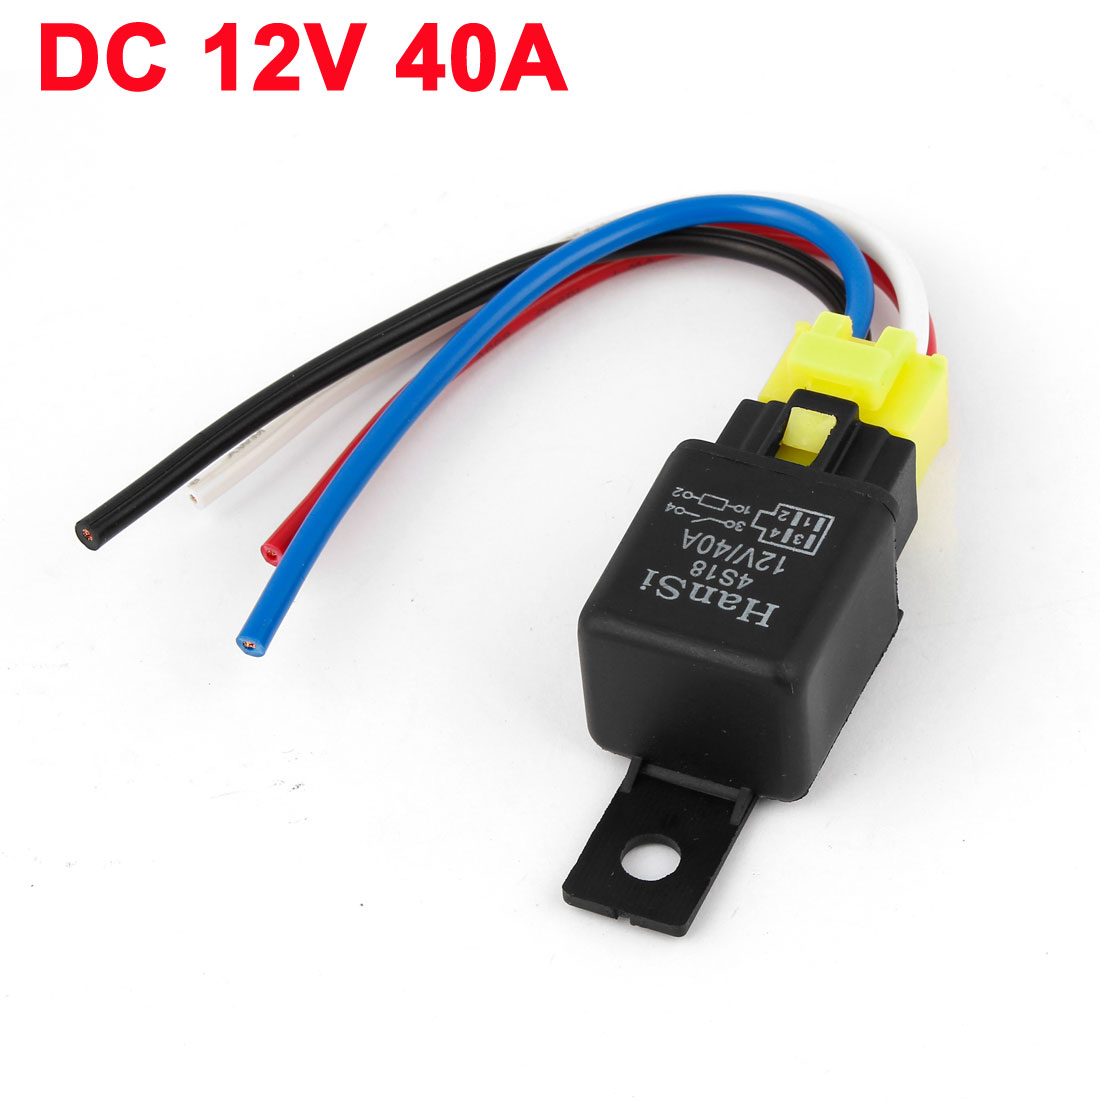 X Autohaux 12V 40A Plastic Socket Spst On On 4 Pin 4 Wires Cable ...